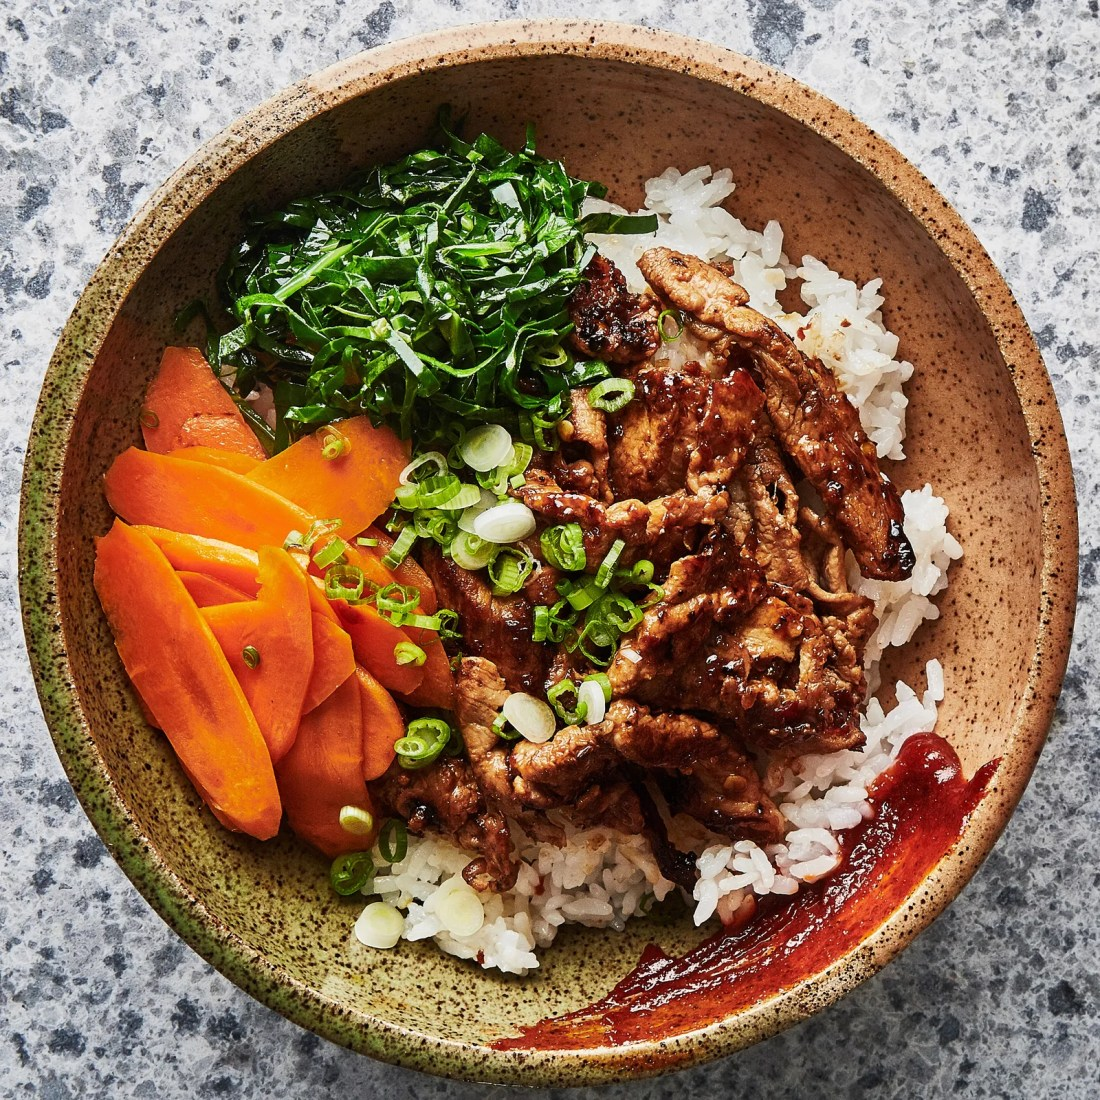 Marinated meat, rice, and some kind of pickled veggie will always be a simple way to get maximum flavor and indulge. This pork and rice recipe from Bon Appetit (my go-to for trying new recipes) is a fast weeknight dinner for sure... | photo: bon appetit